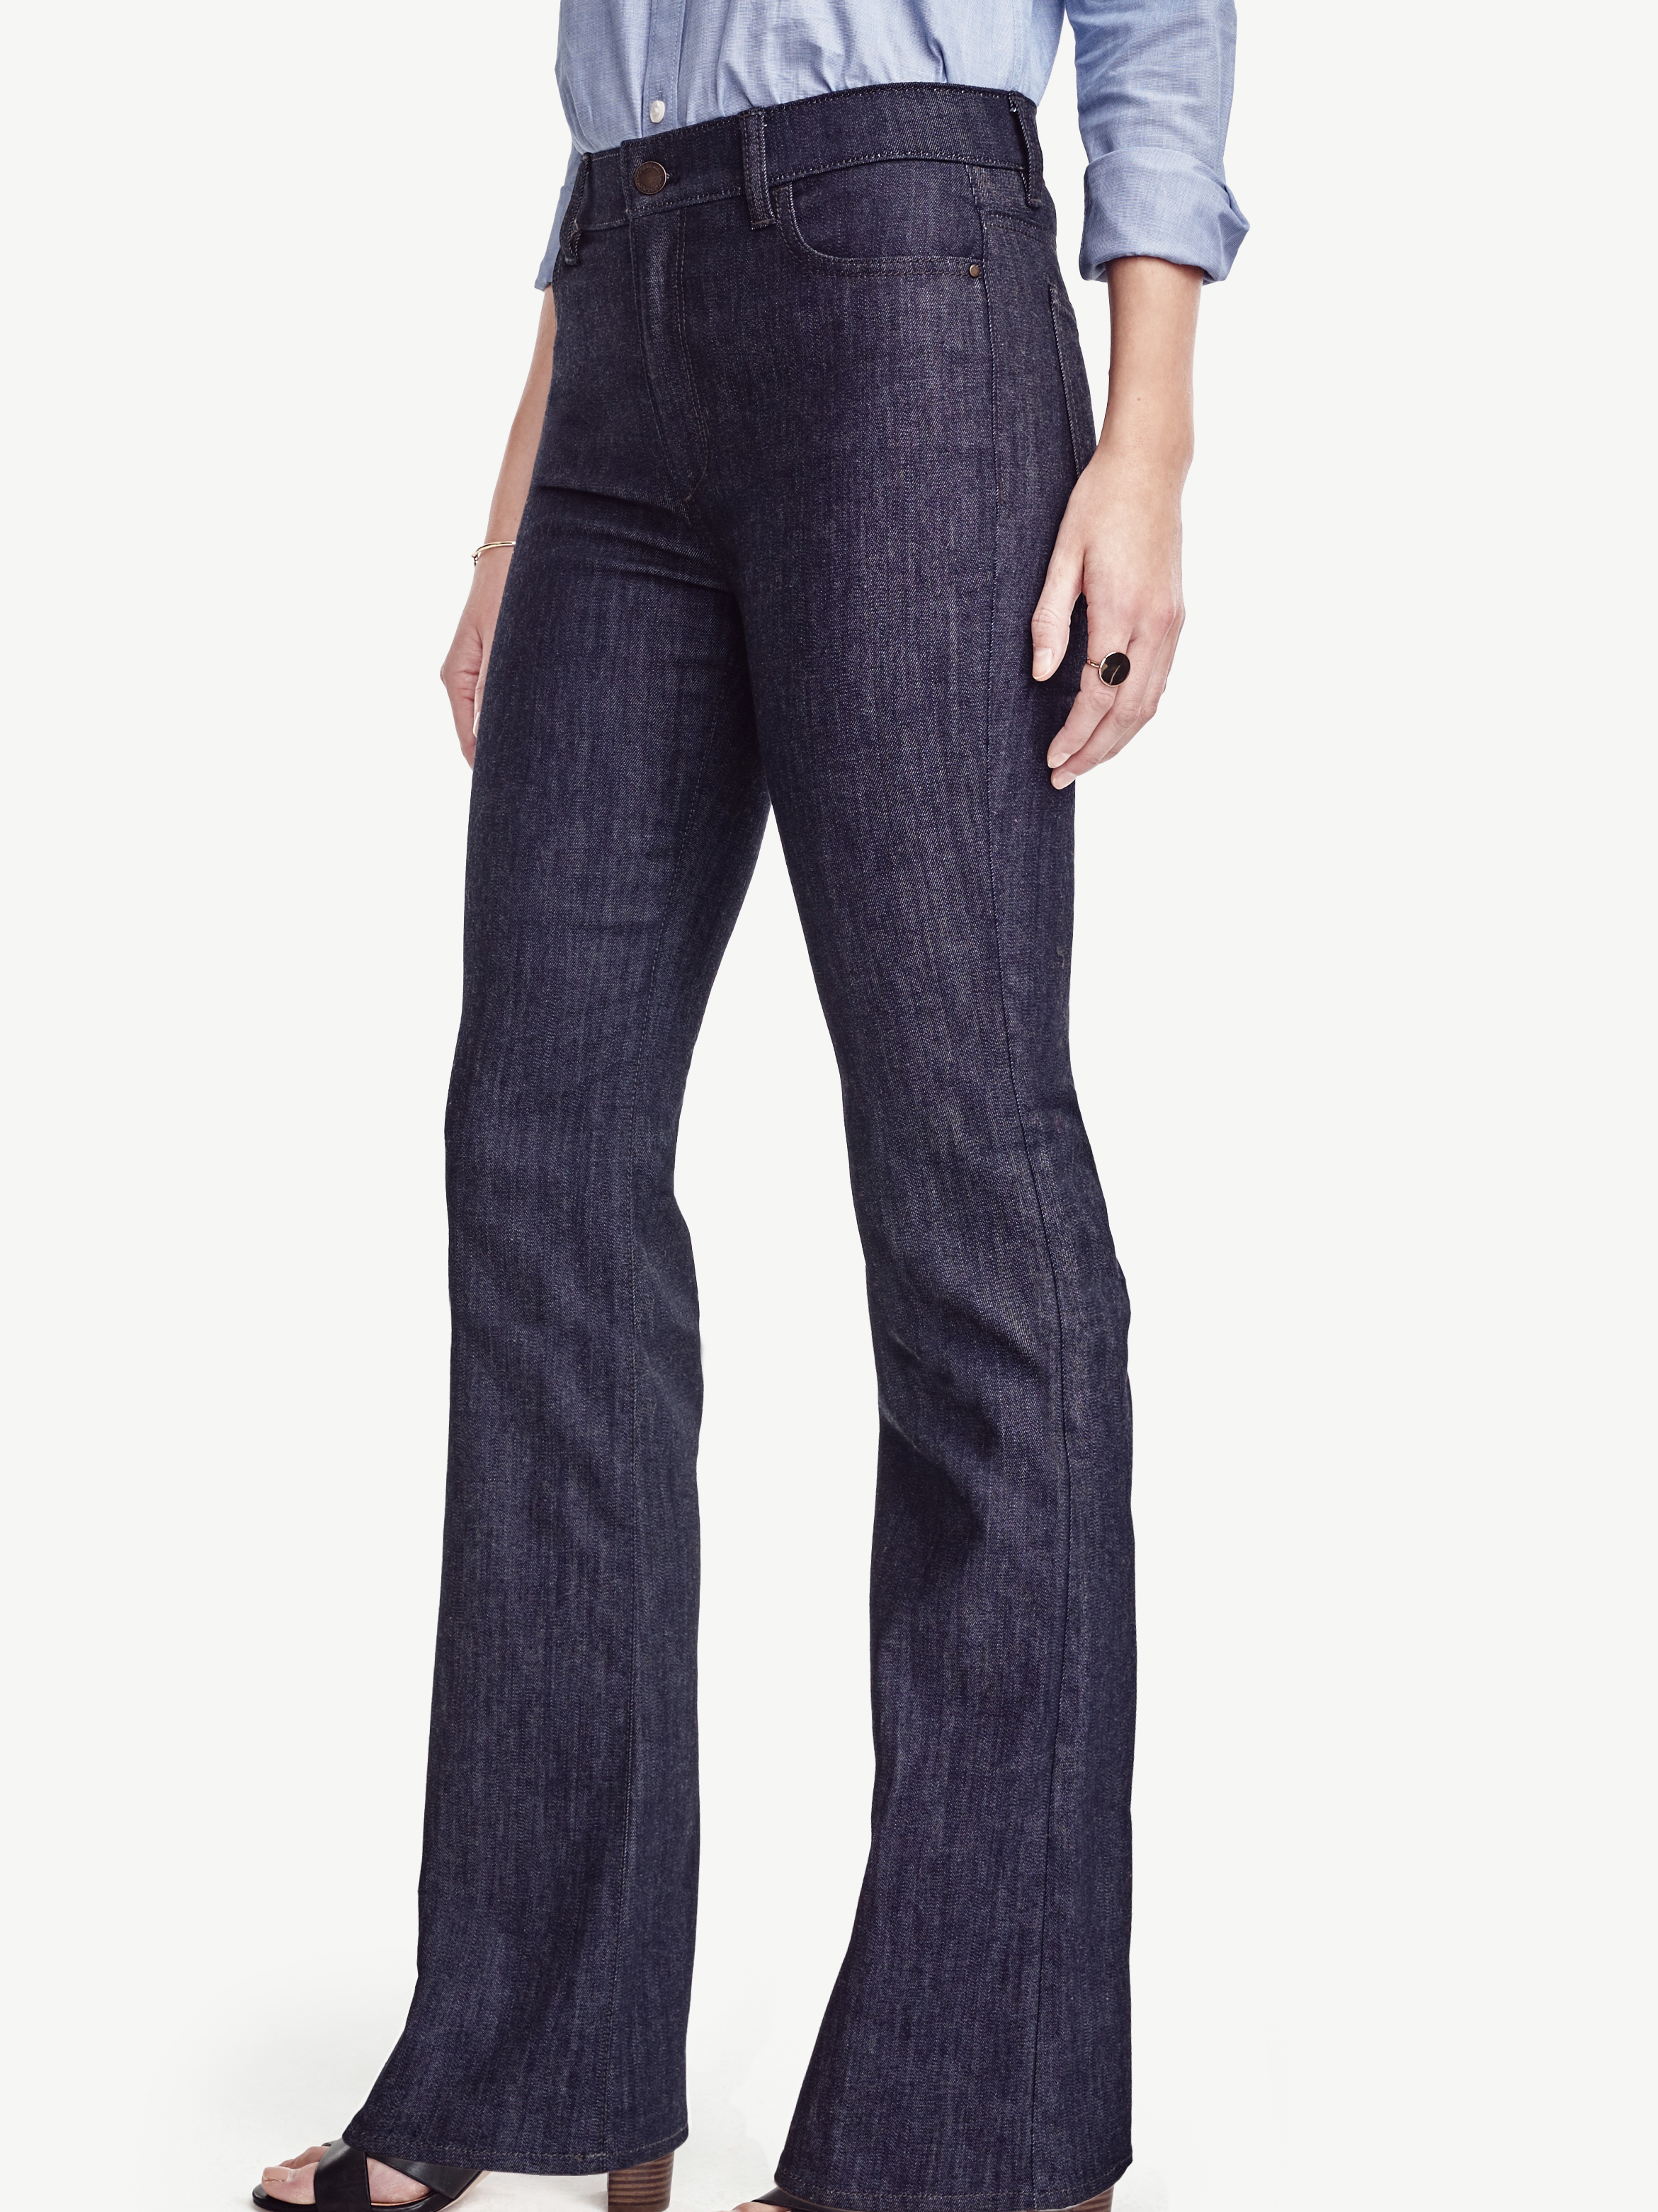 Ann taylor Petite High Waisted Flare Jeans in Blue | Lyst